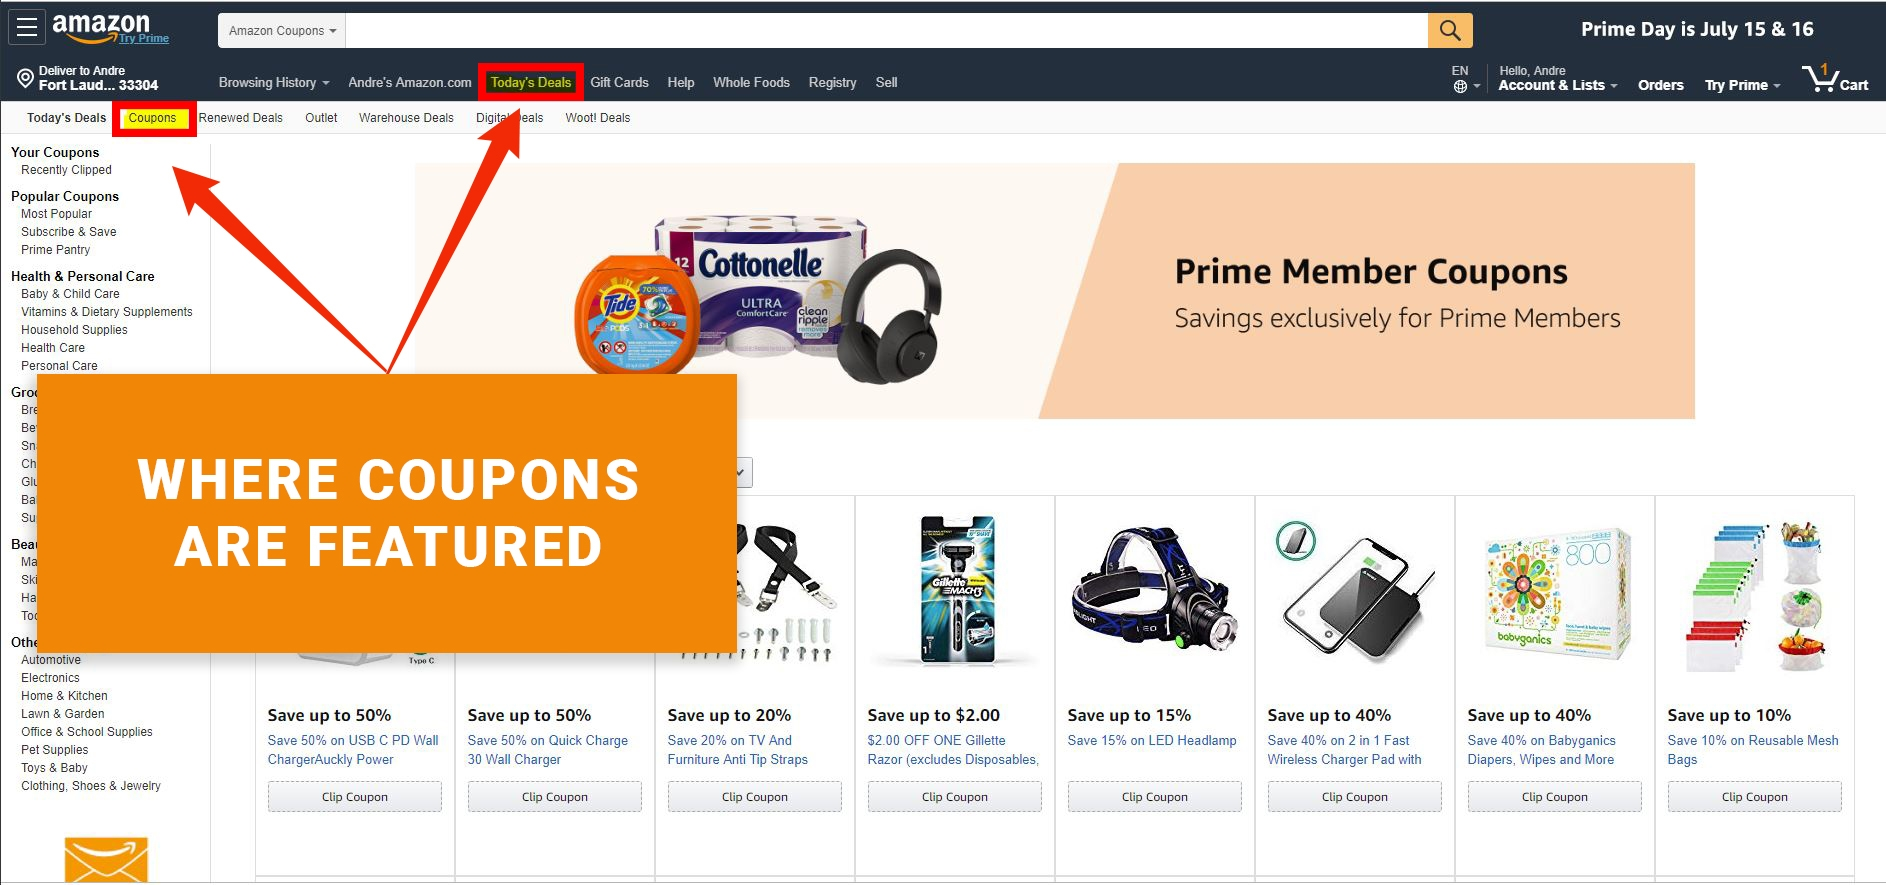 Where Are Amazon Coupons Featured?